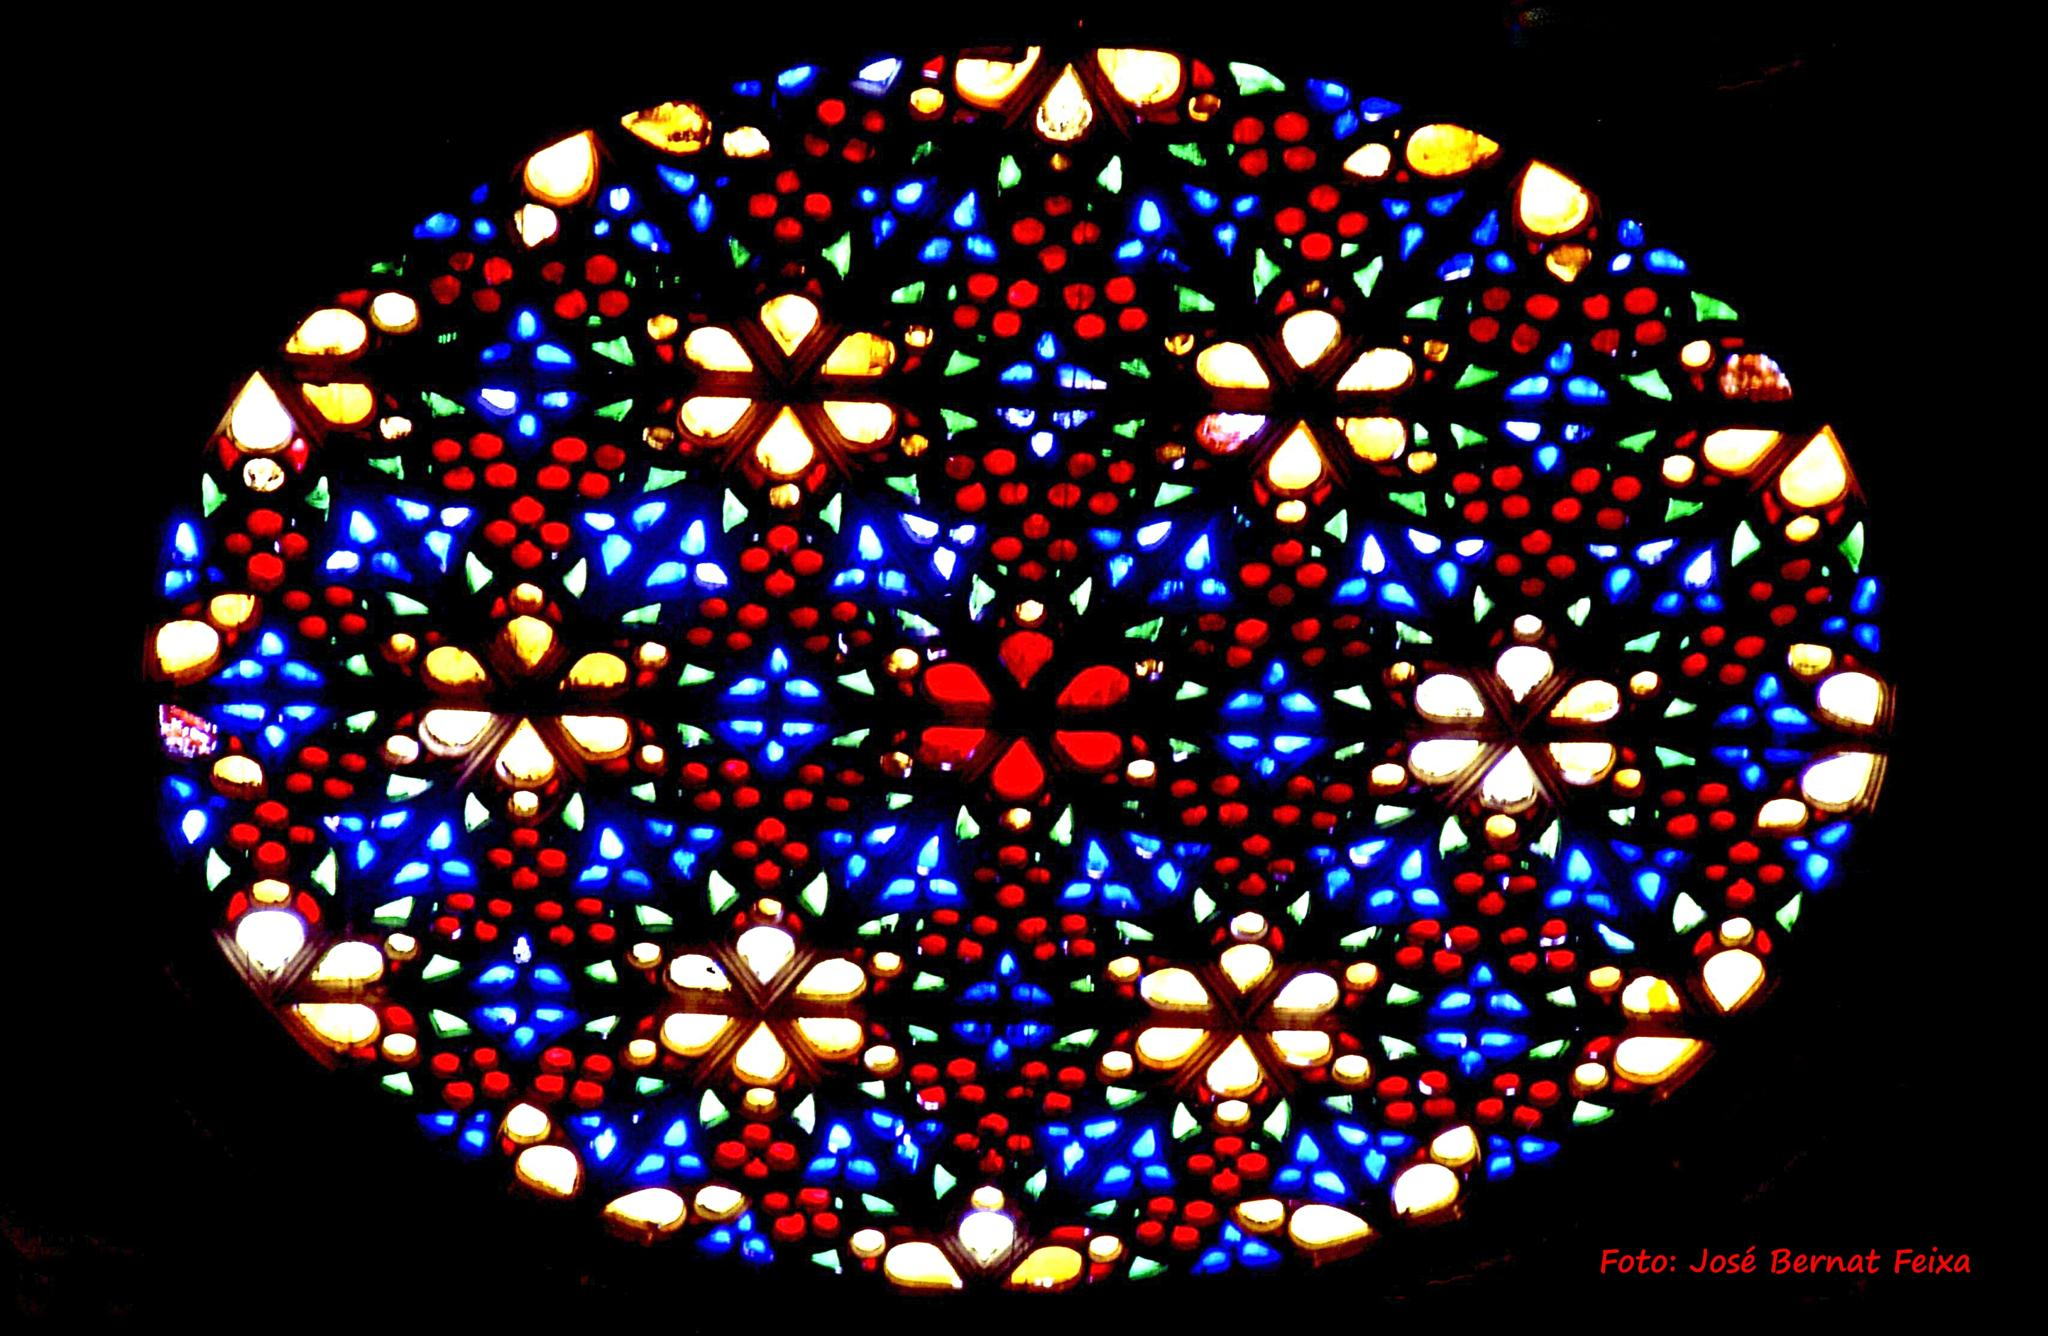 VITRAL, GLAS IN LOOD, STAINED GLASS, Mallorca (1973) by José Bernat Feixa